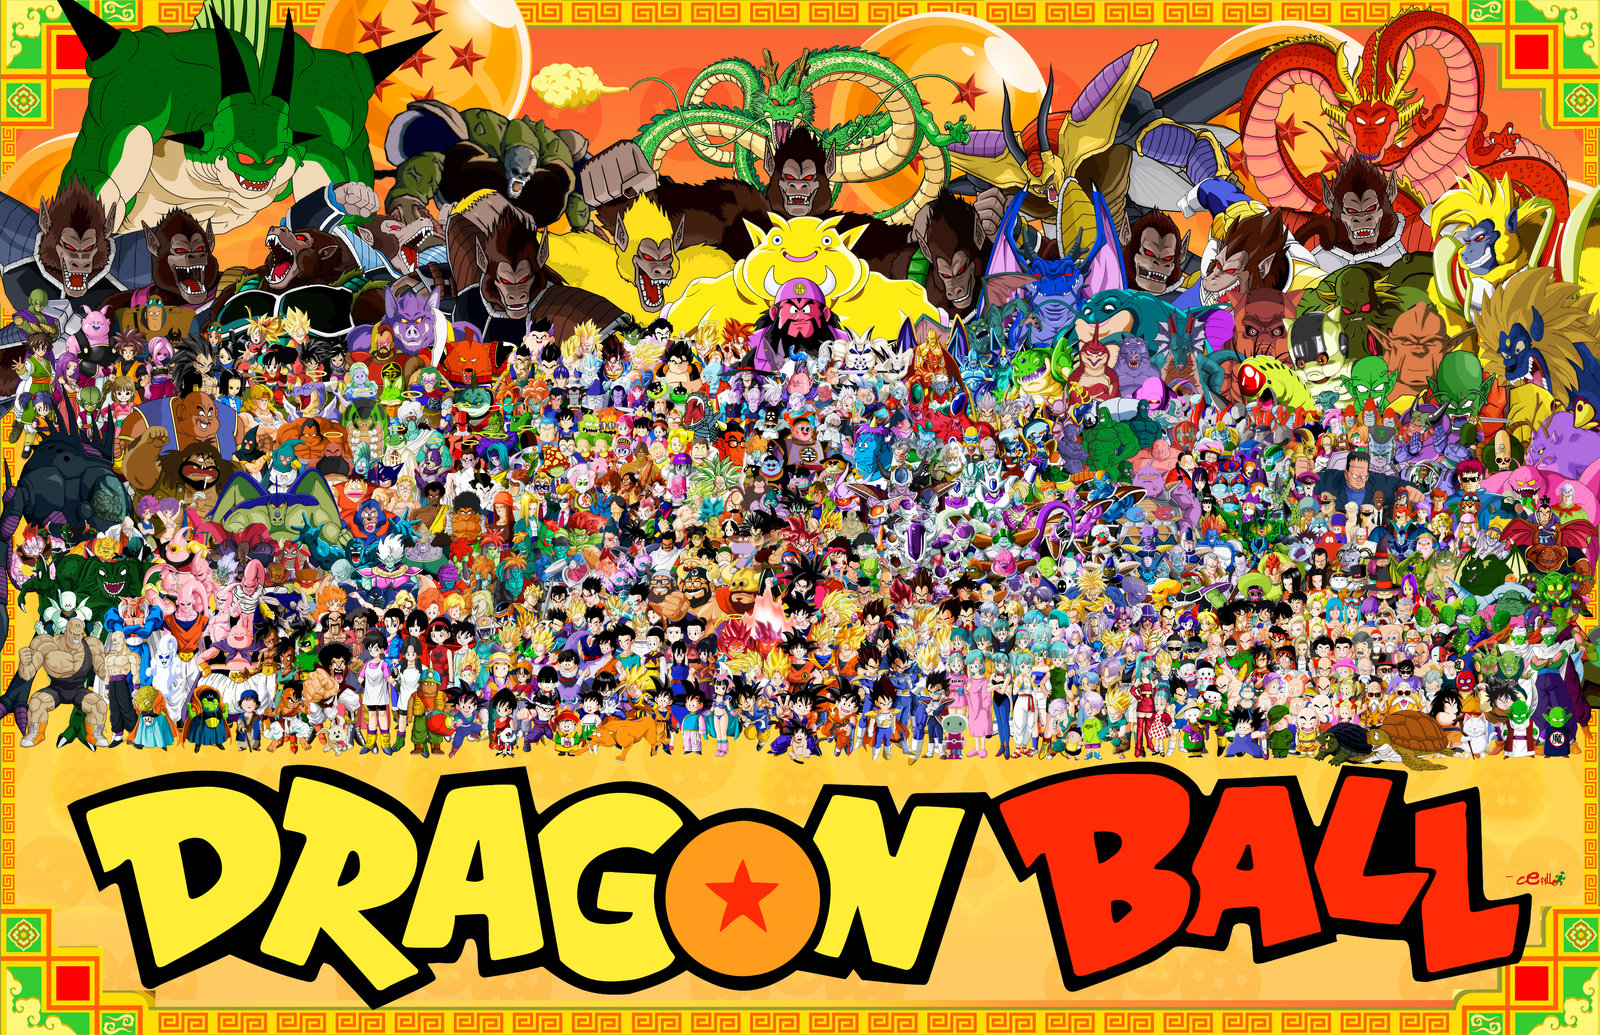 All Dragon Ball Z Characters Best Wallpaper Coloring Page Online 1600x1035